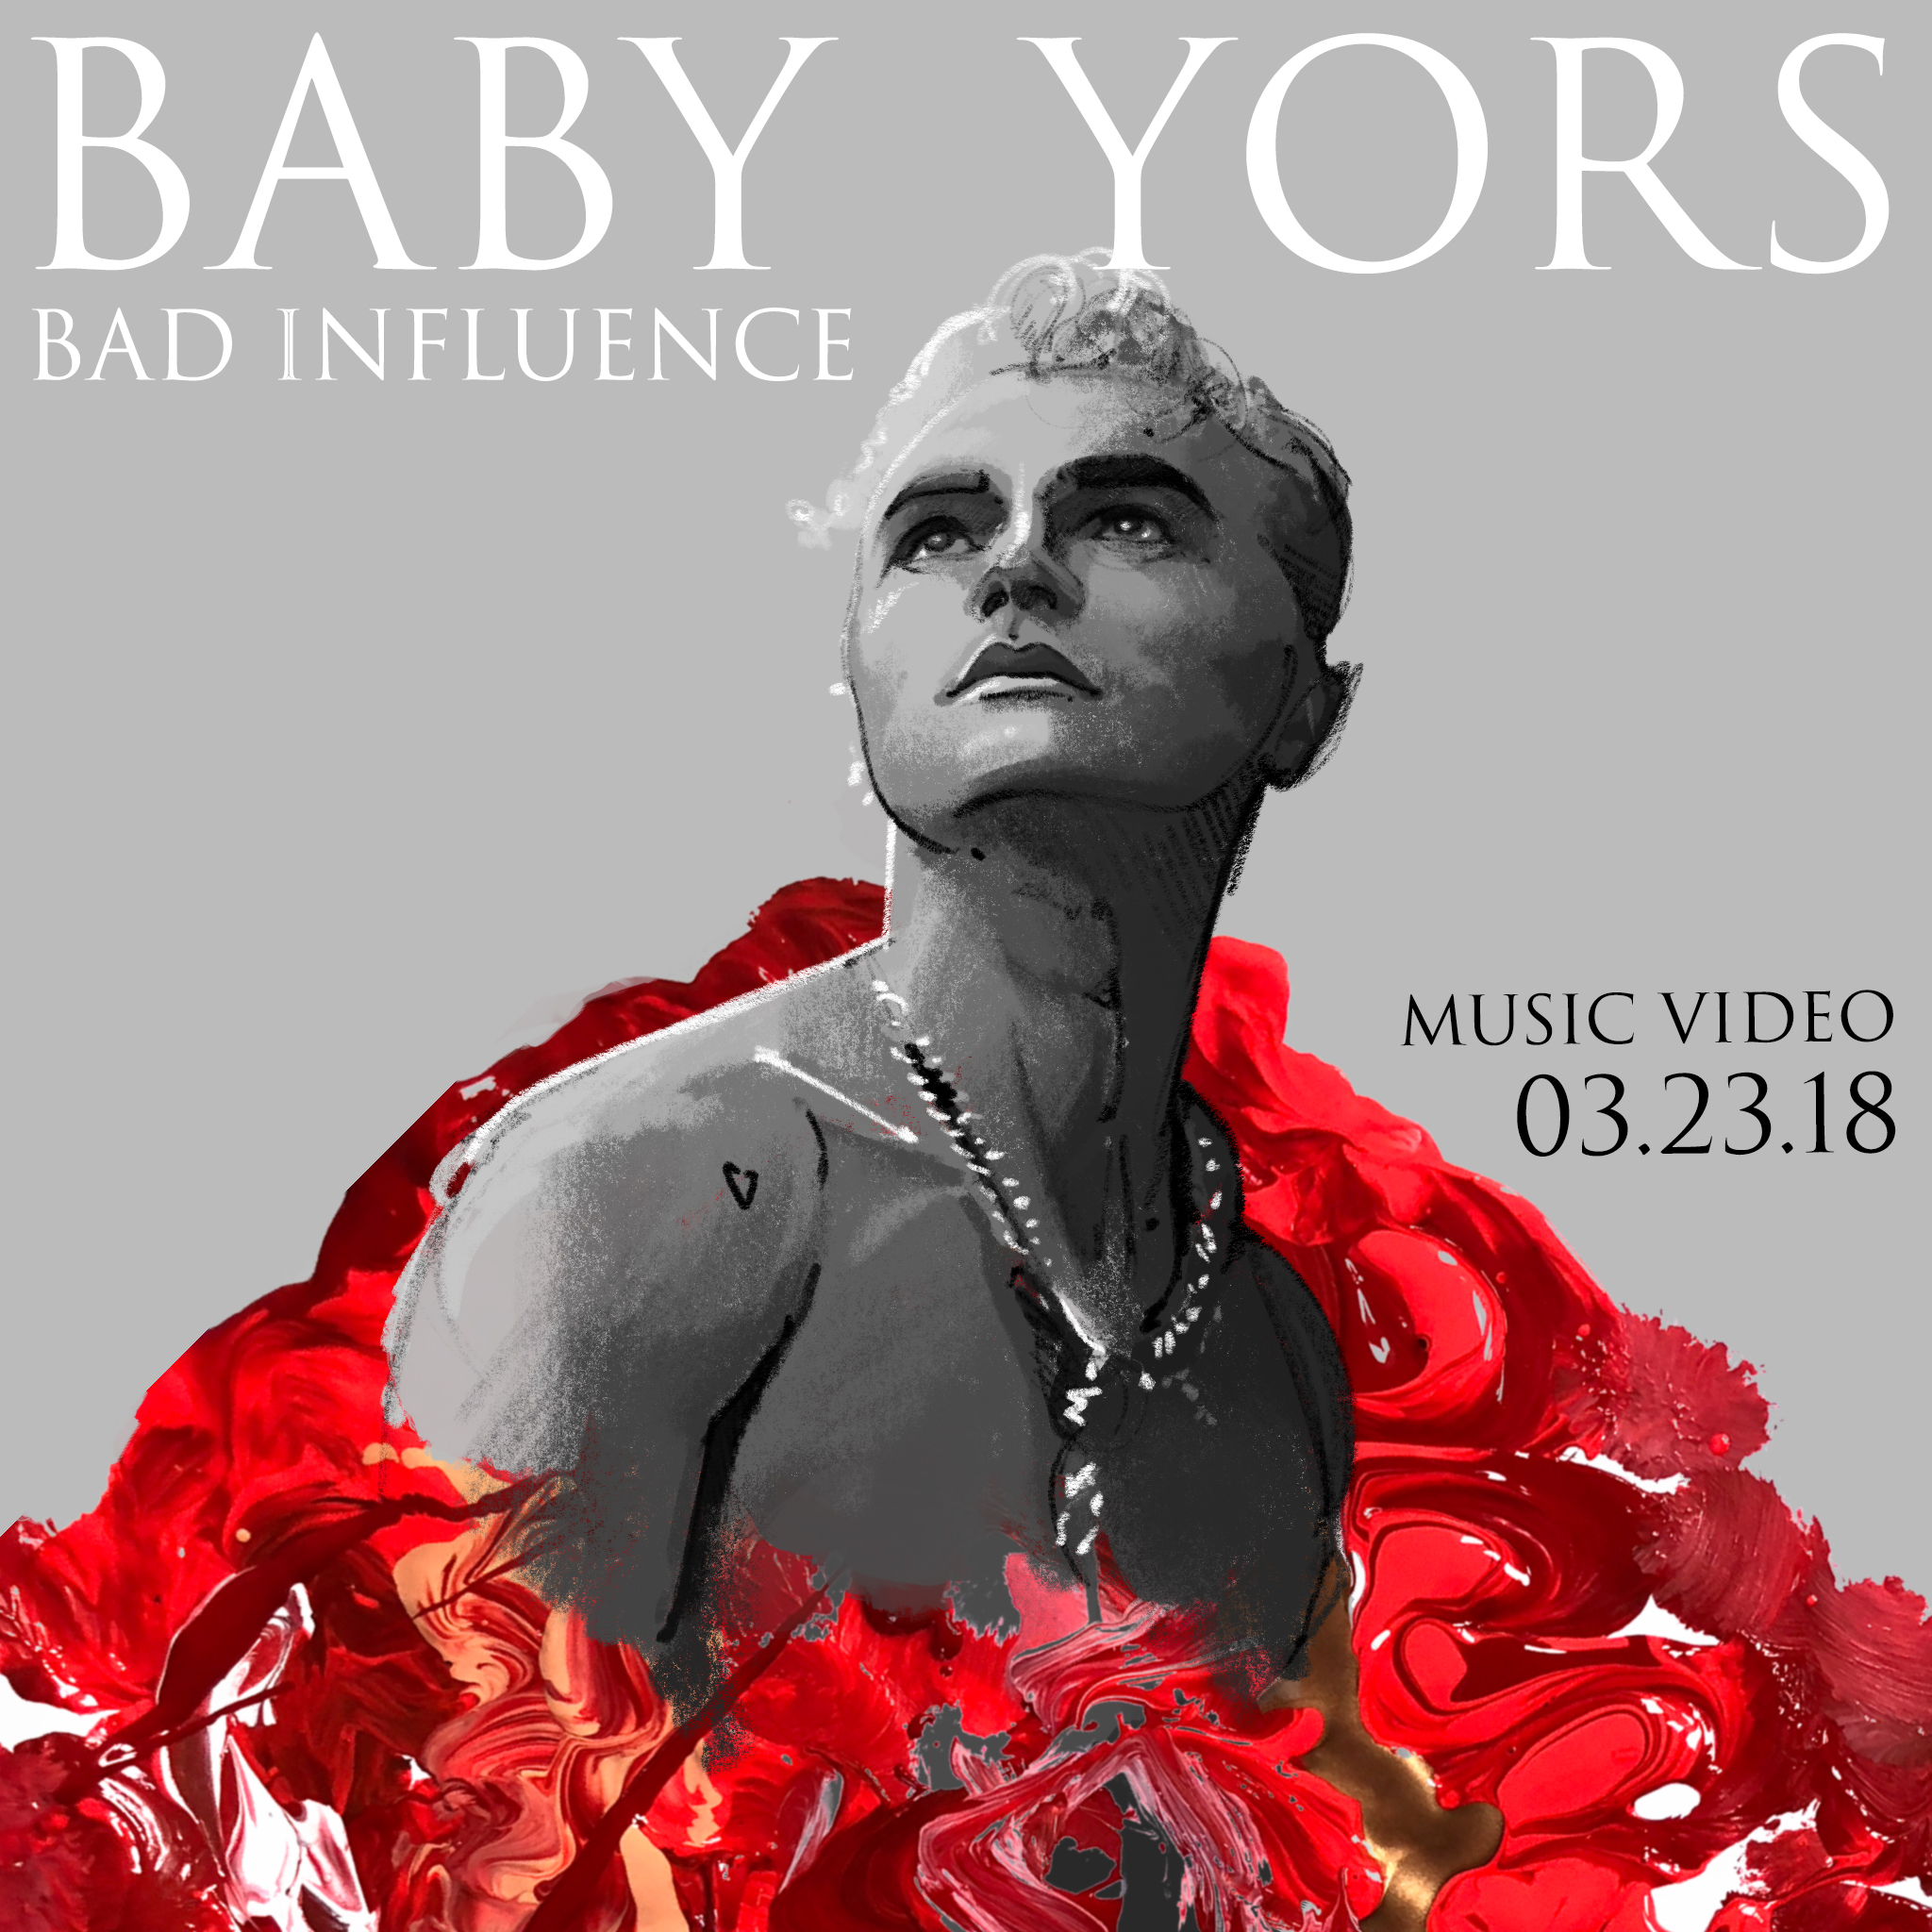 BAD INFLUENCE - MUSIC VIDEO ART 2.jpg